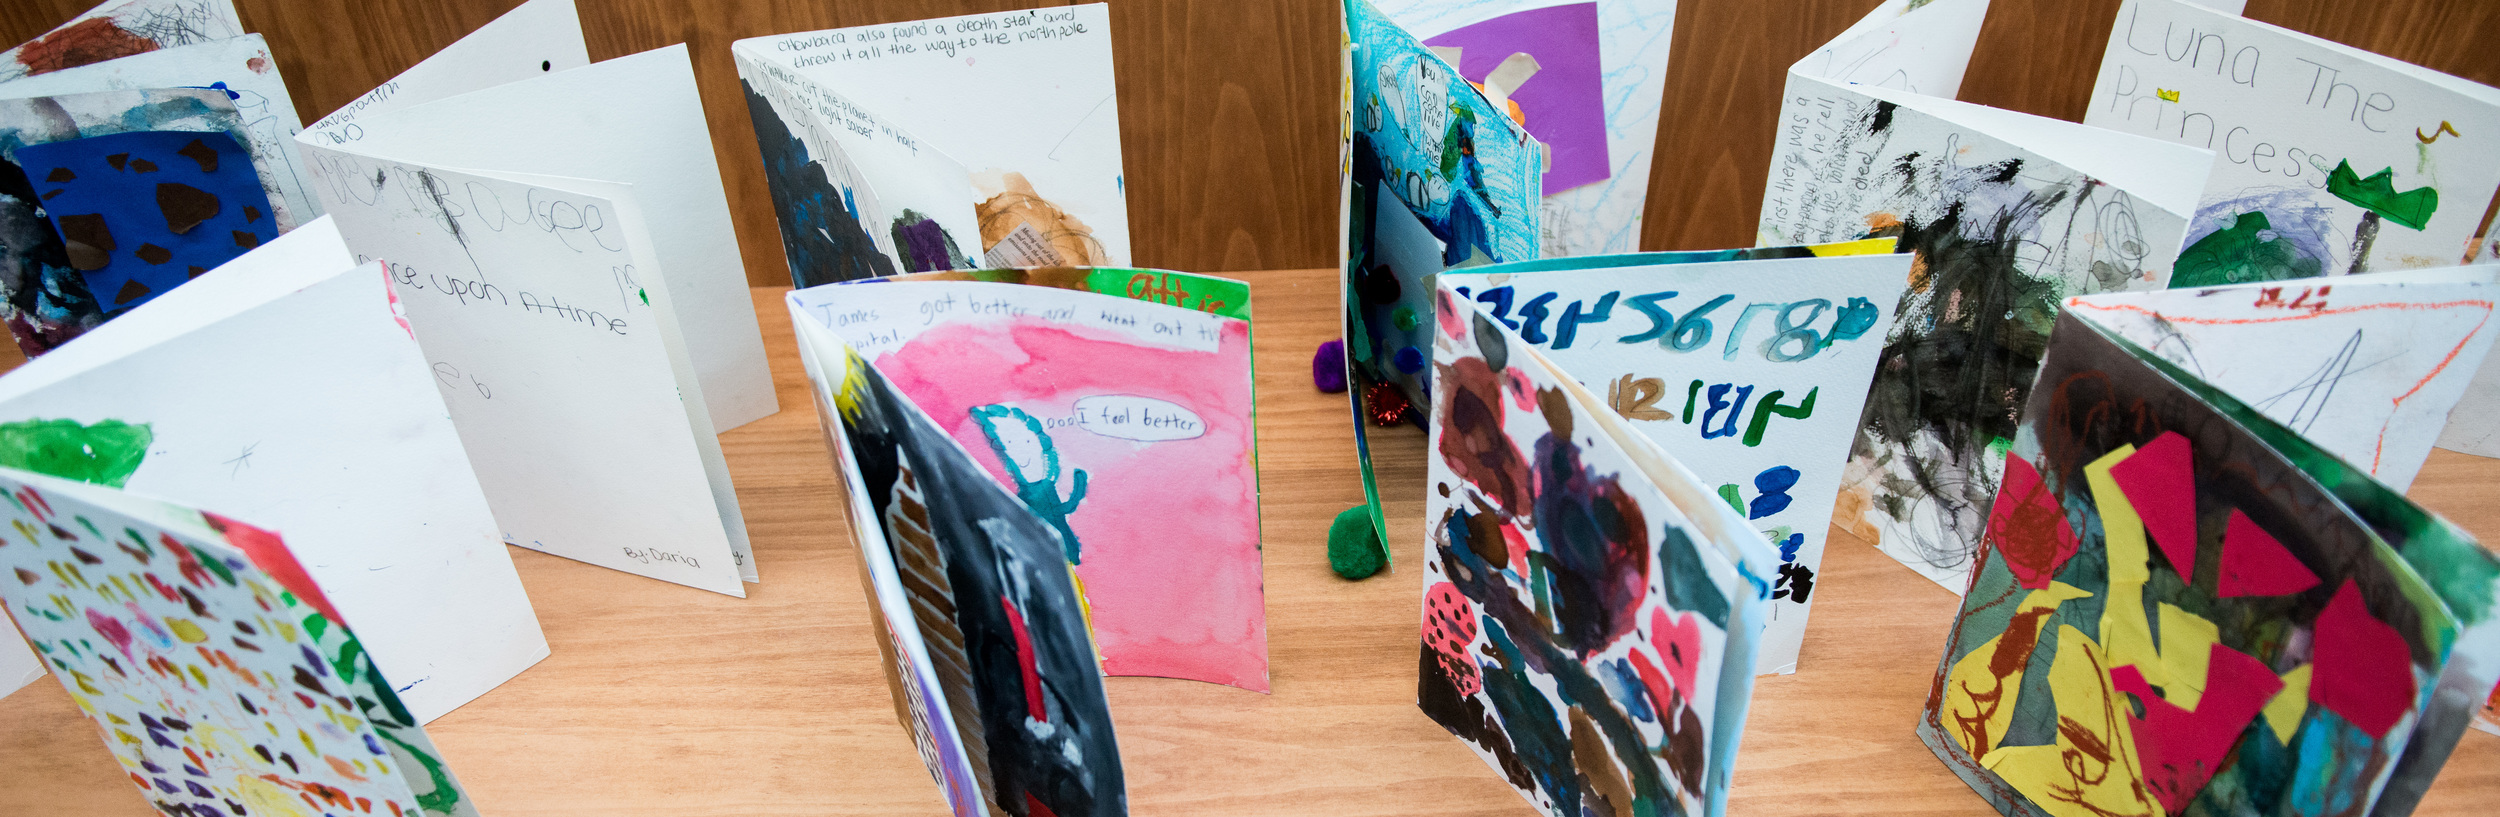 Library of children's books created during camp.    Photo by Michael Palma Mir